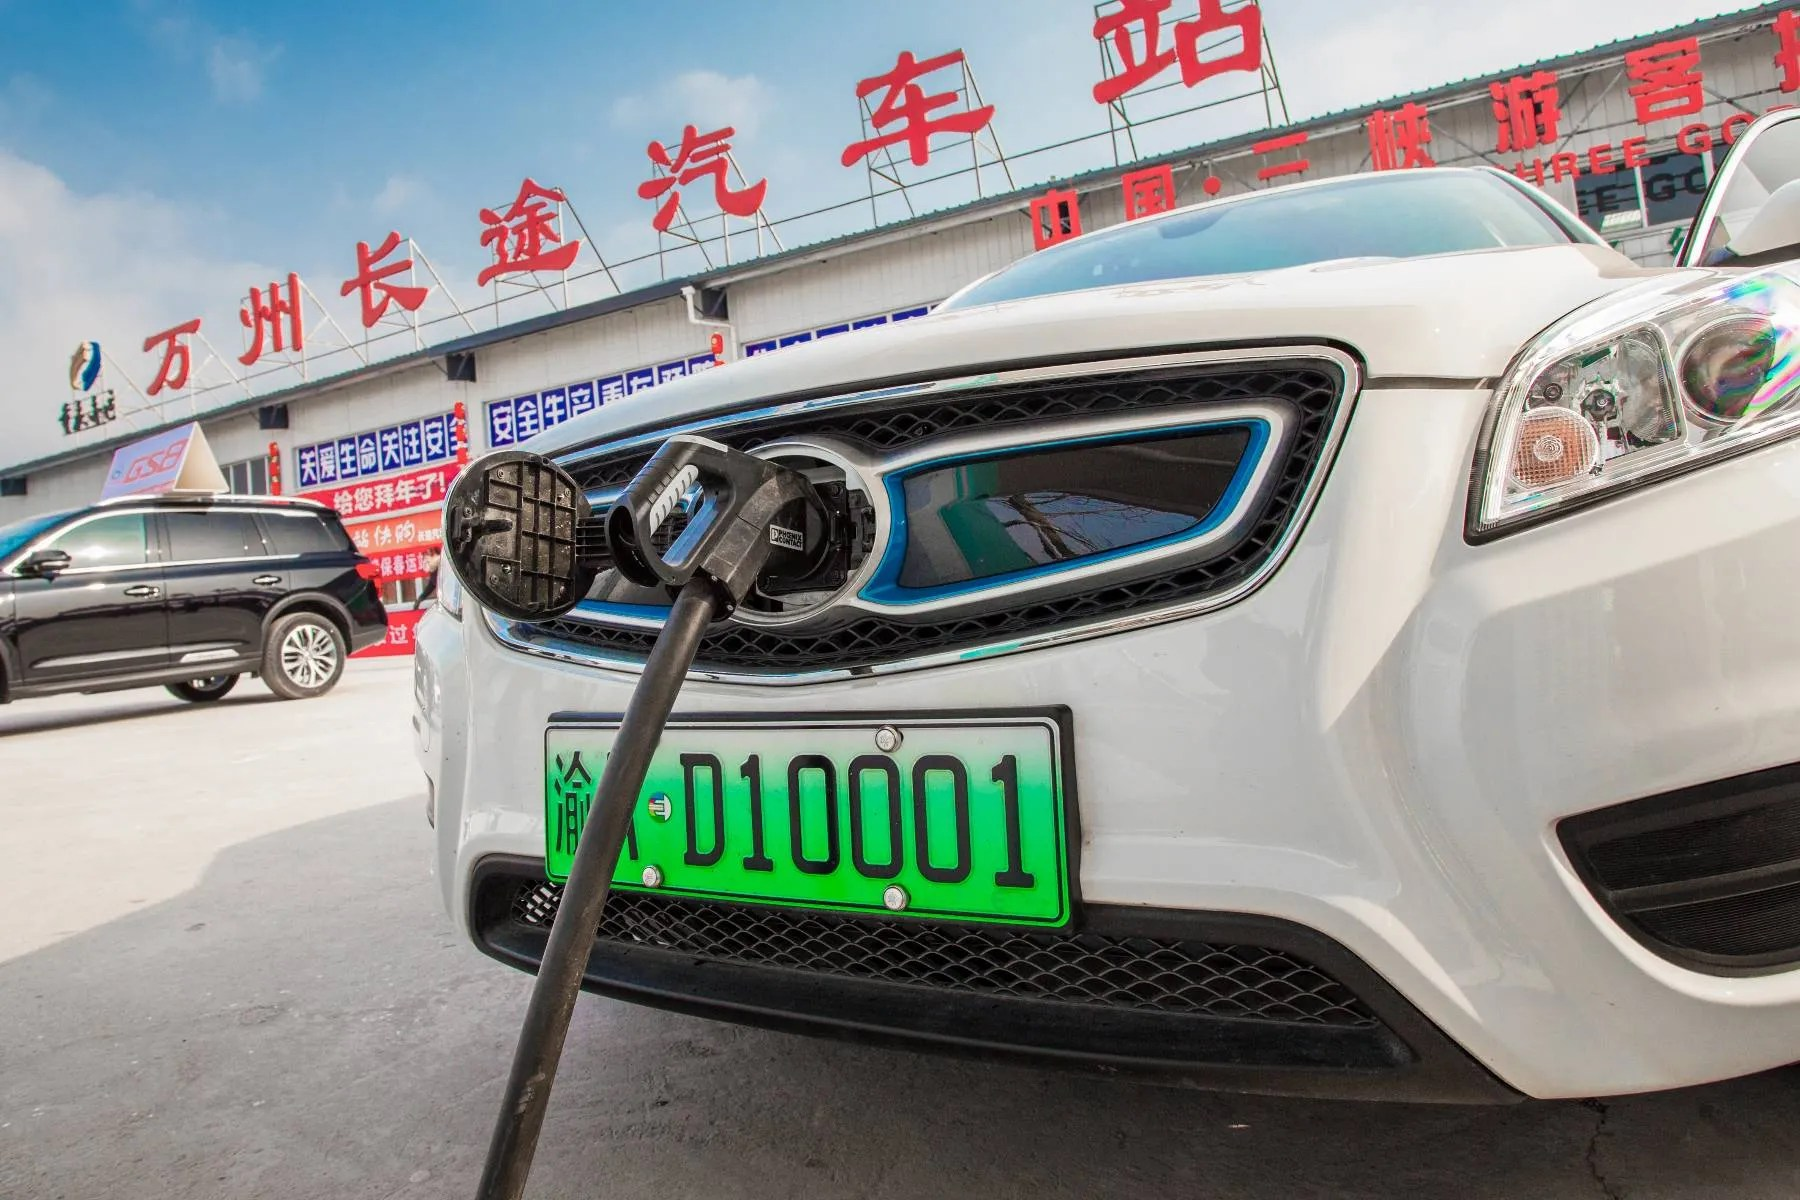 matriculas verdes en China coches electricos